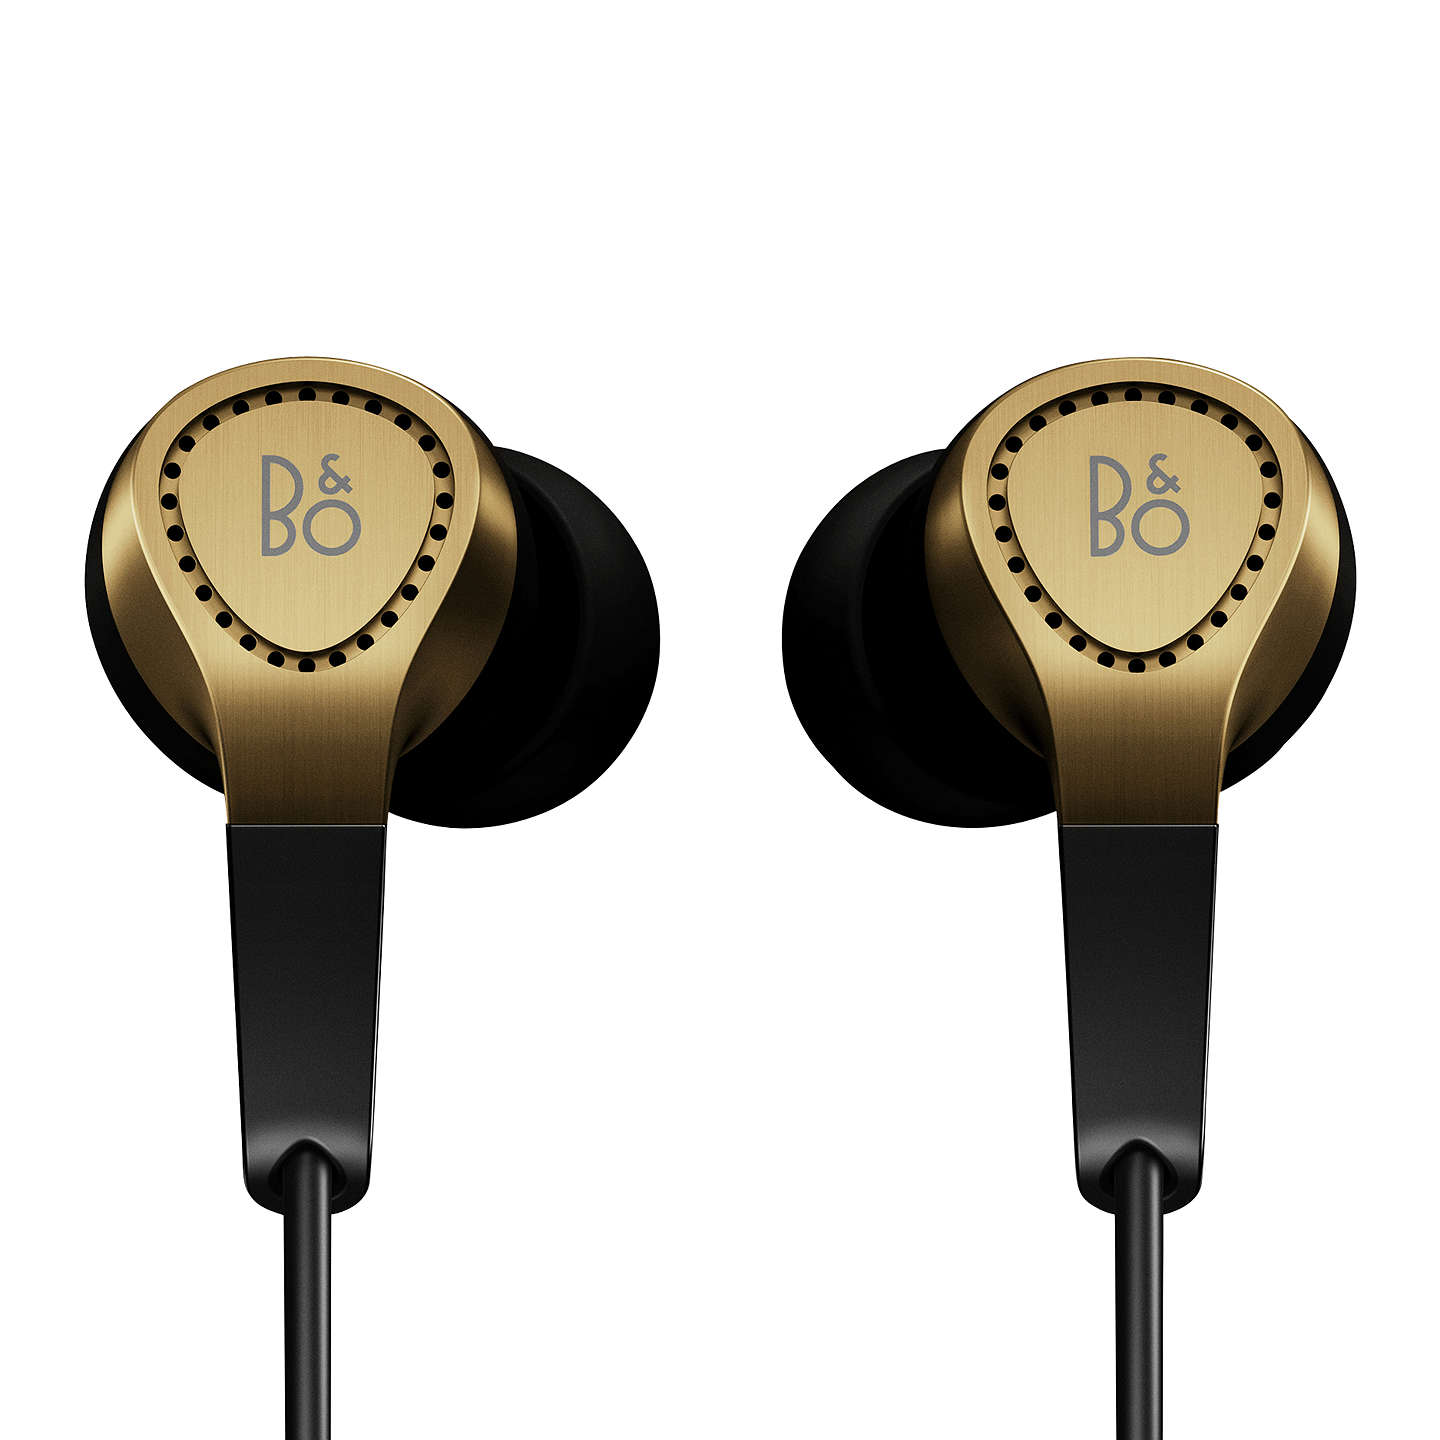 BuyB&O PLAY by Bang & Olufsen Beoplay H3 In-Ear Headphones with Mic/Remote for iOS Devices, Gold Online at johnlewis.com